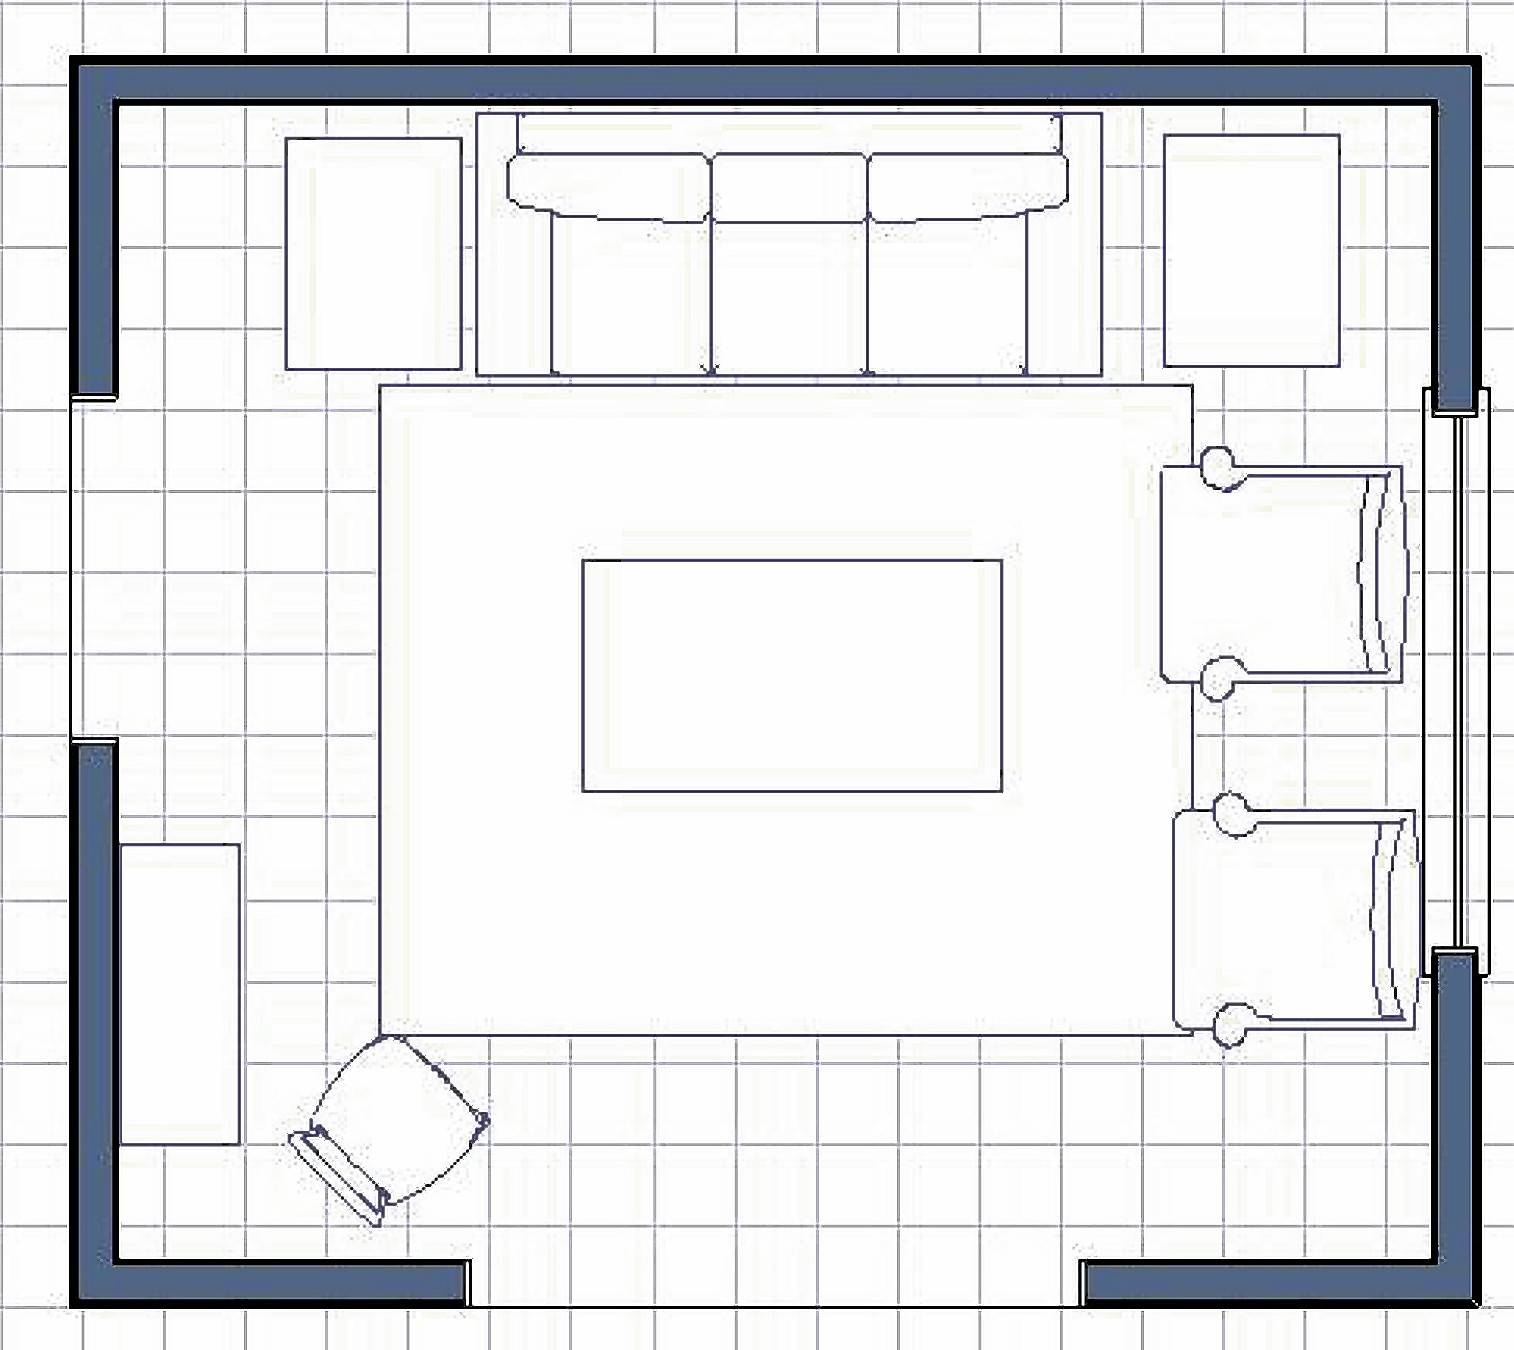 A Steinhafel's interior designer suggests this room layout for the Flynn family.